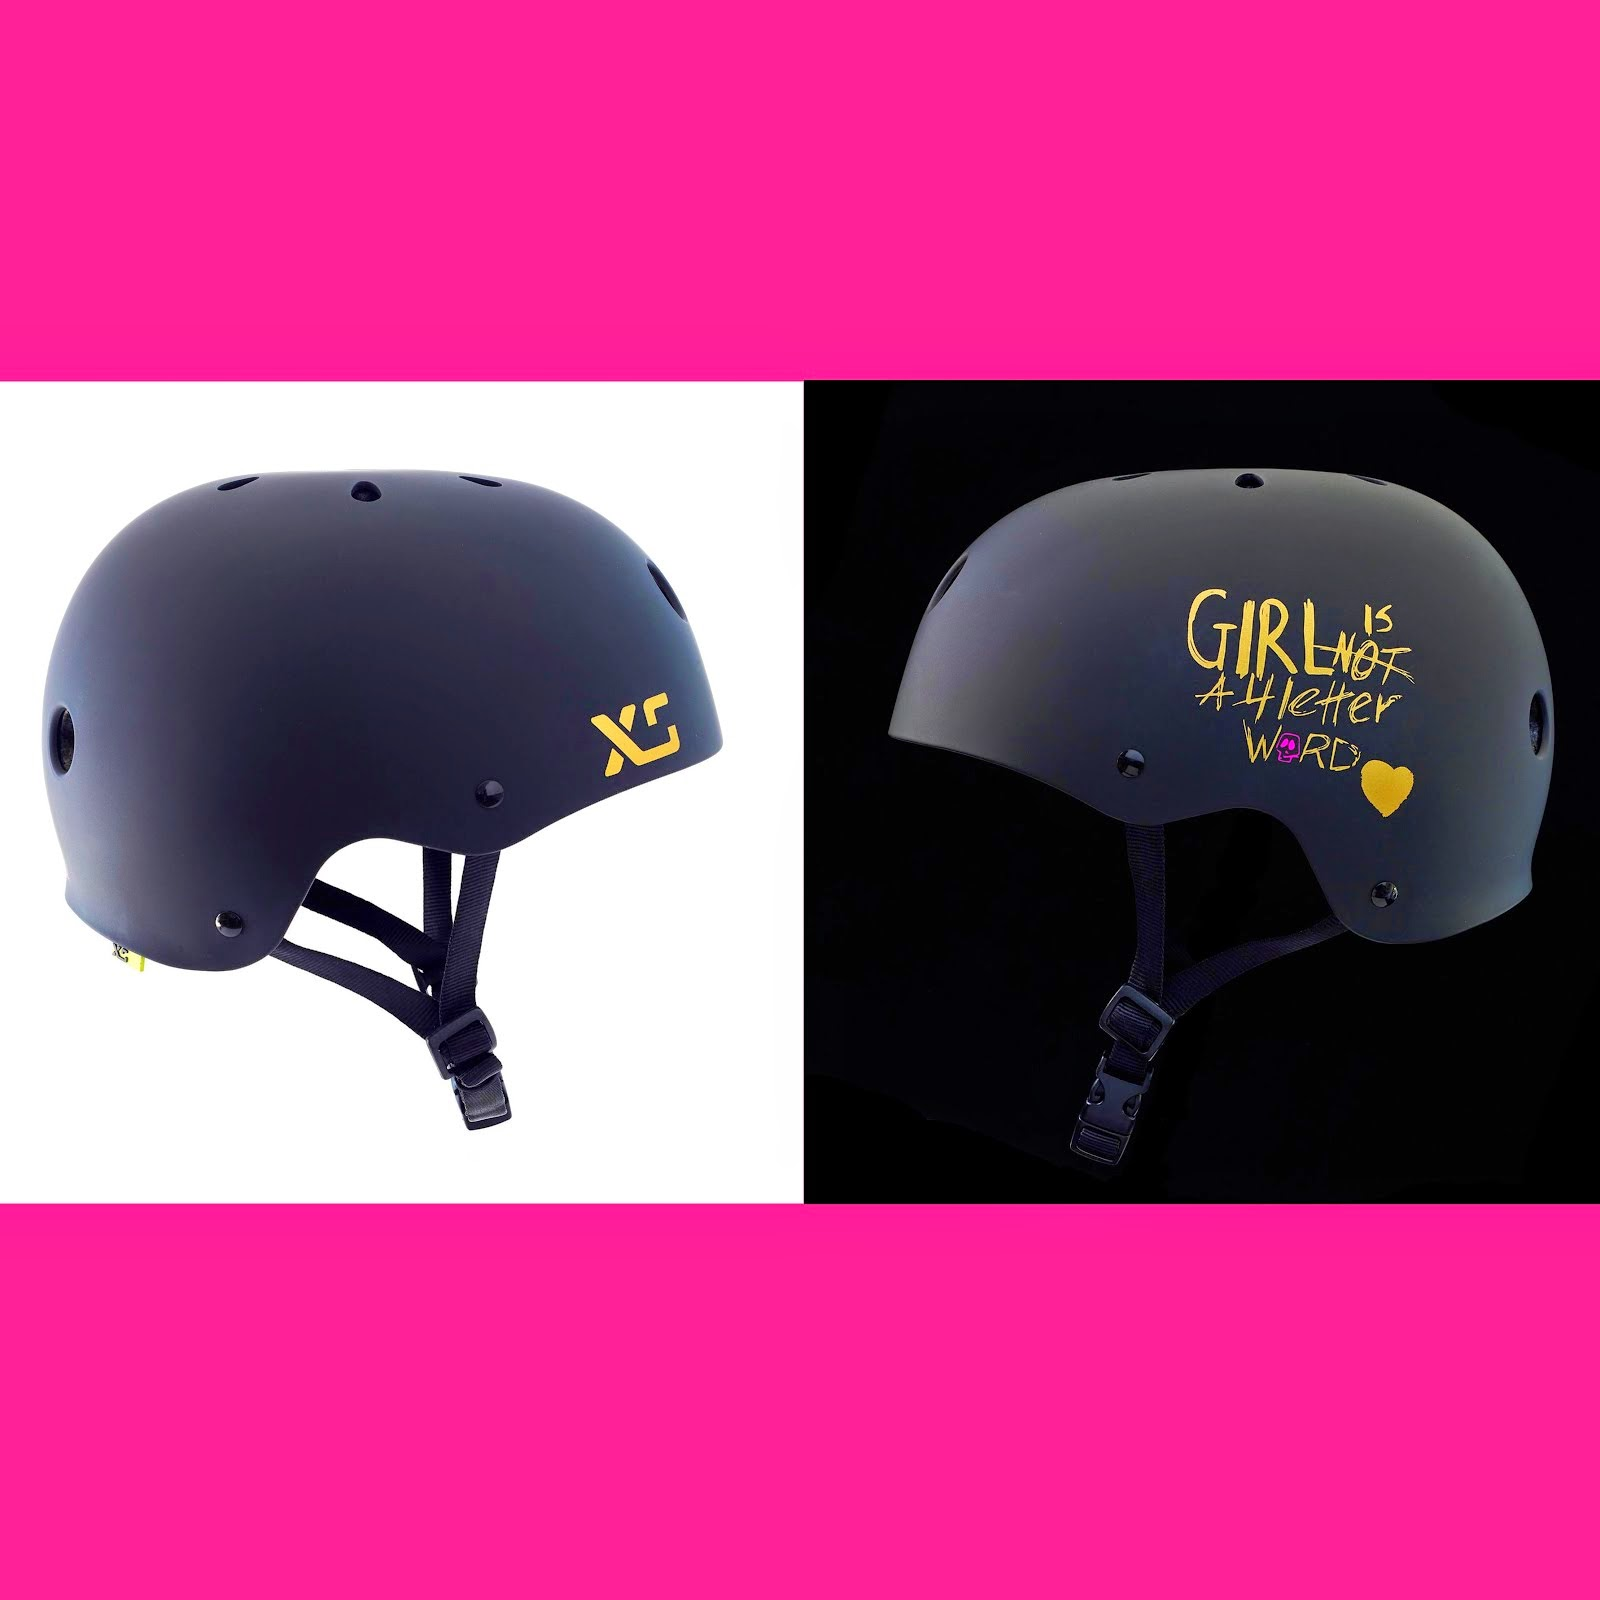 XS Helmets x GN4LW Collab